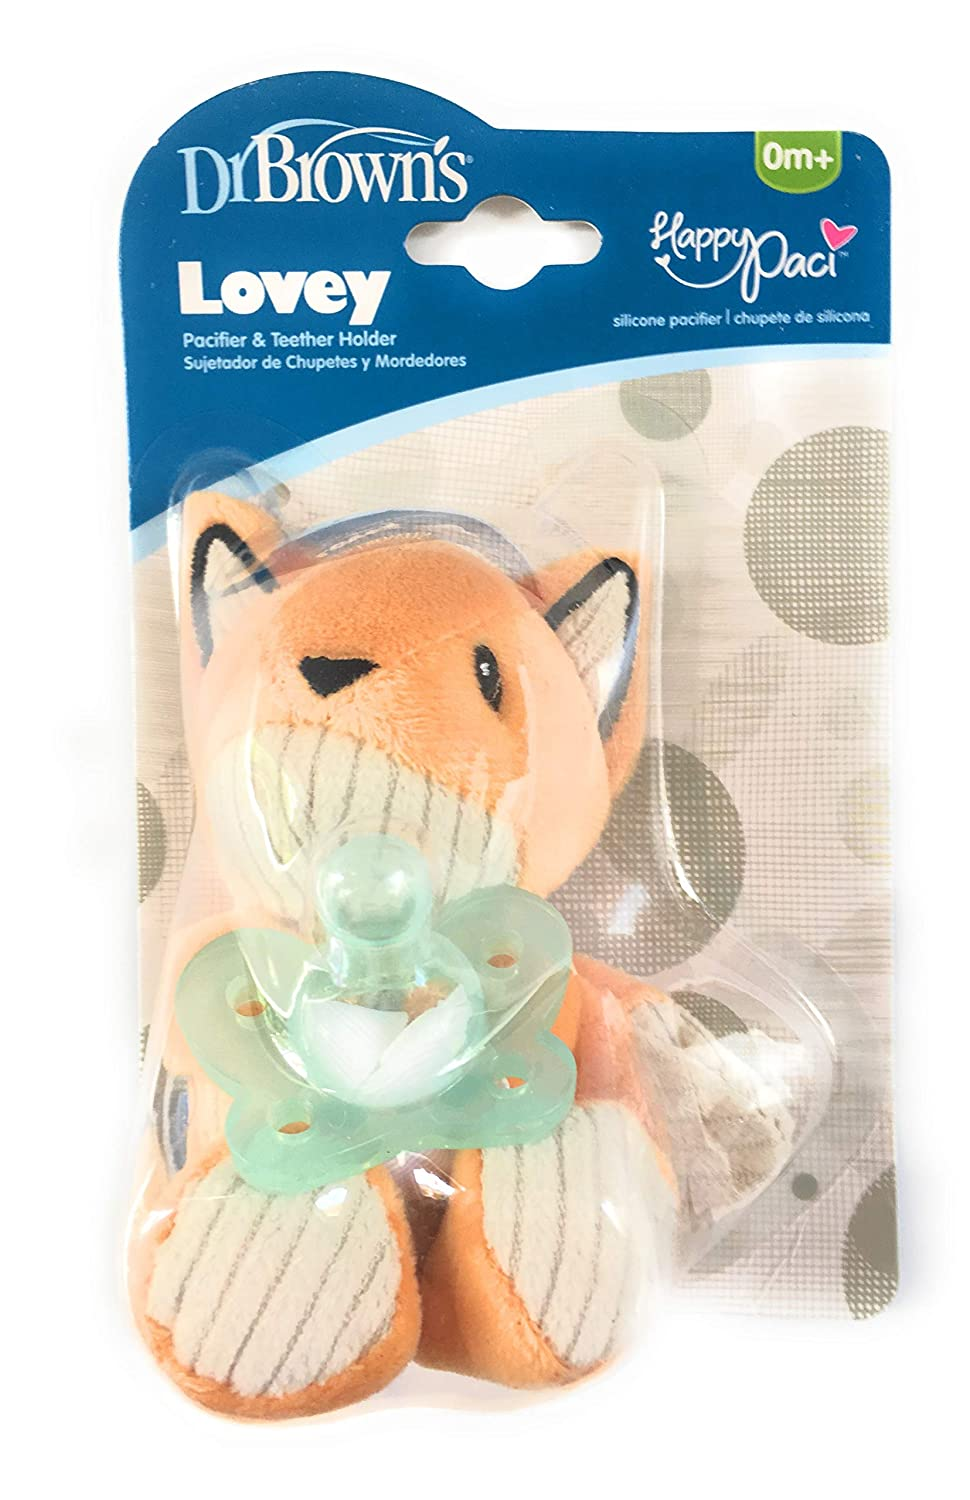 Amazon.com: DR. BROWNS Lovey PACIFIER & TEETHER HOLDER & COTTON MUSLIN BLANKETS 3 PACK BY Modern Baby PERFECT for your new little bundle of joy NEWBORN ...